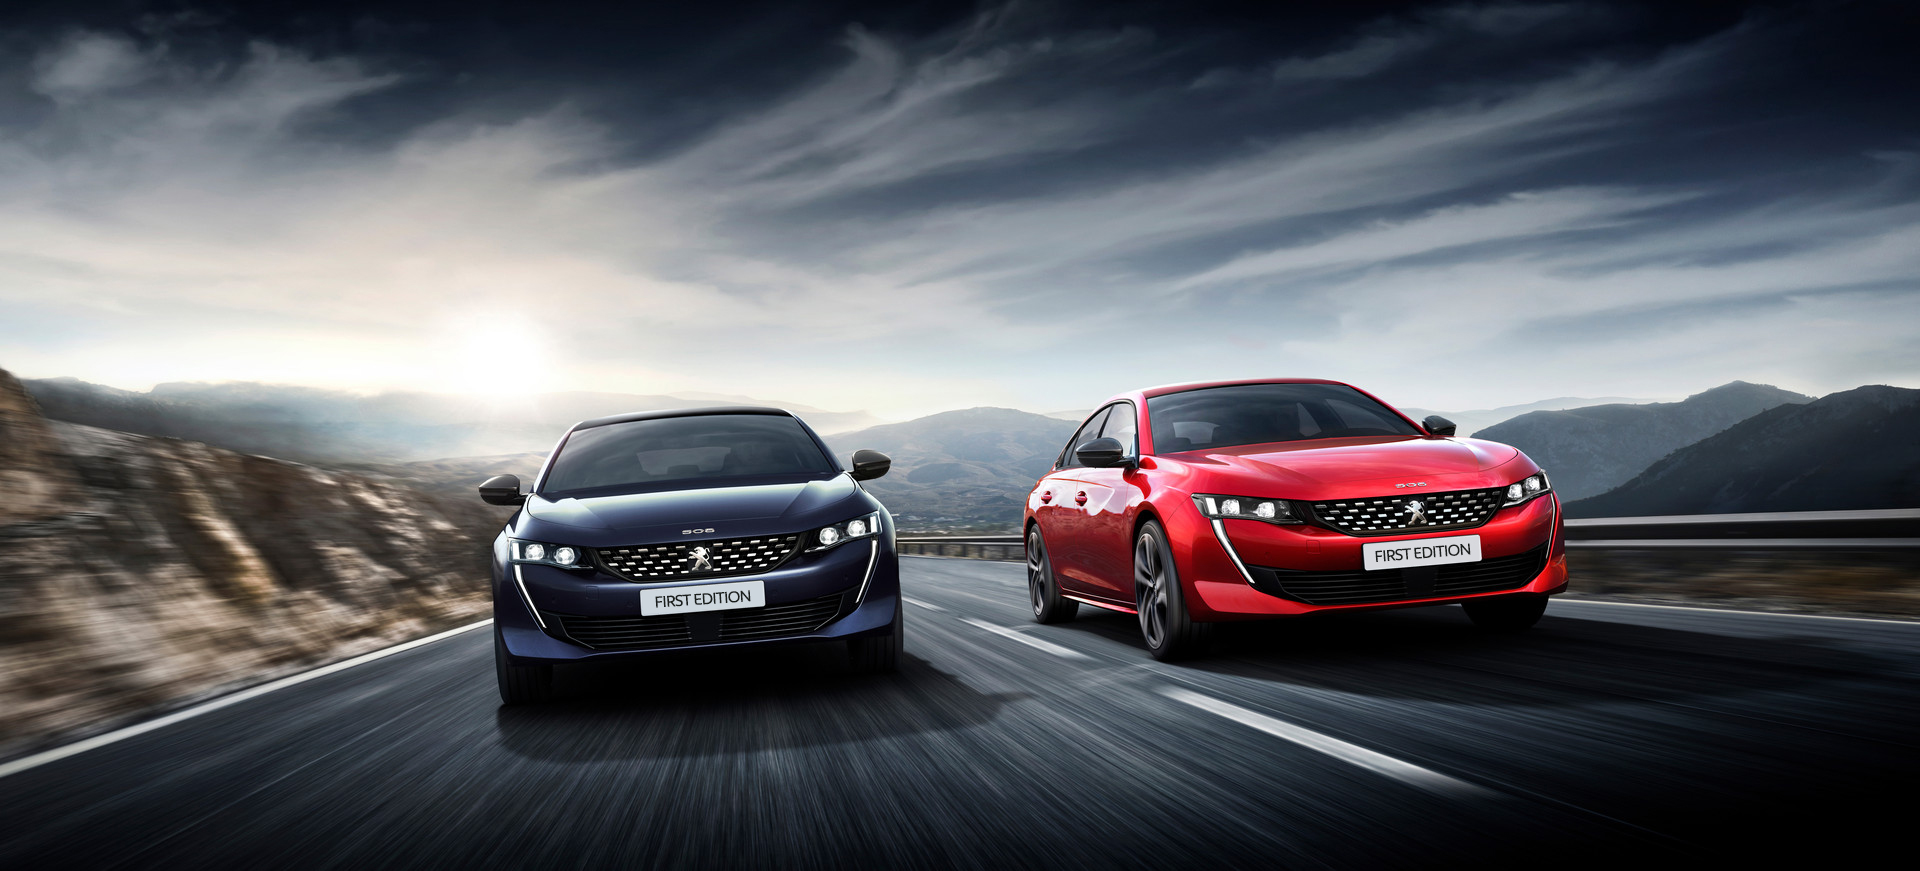 Peugeot celebrate new 508 model with limited edition model called First Edition